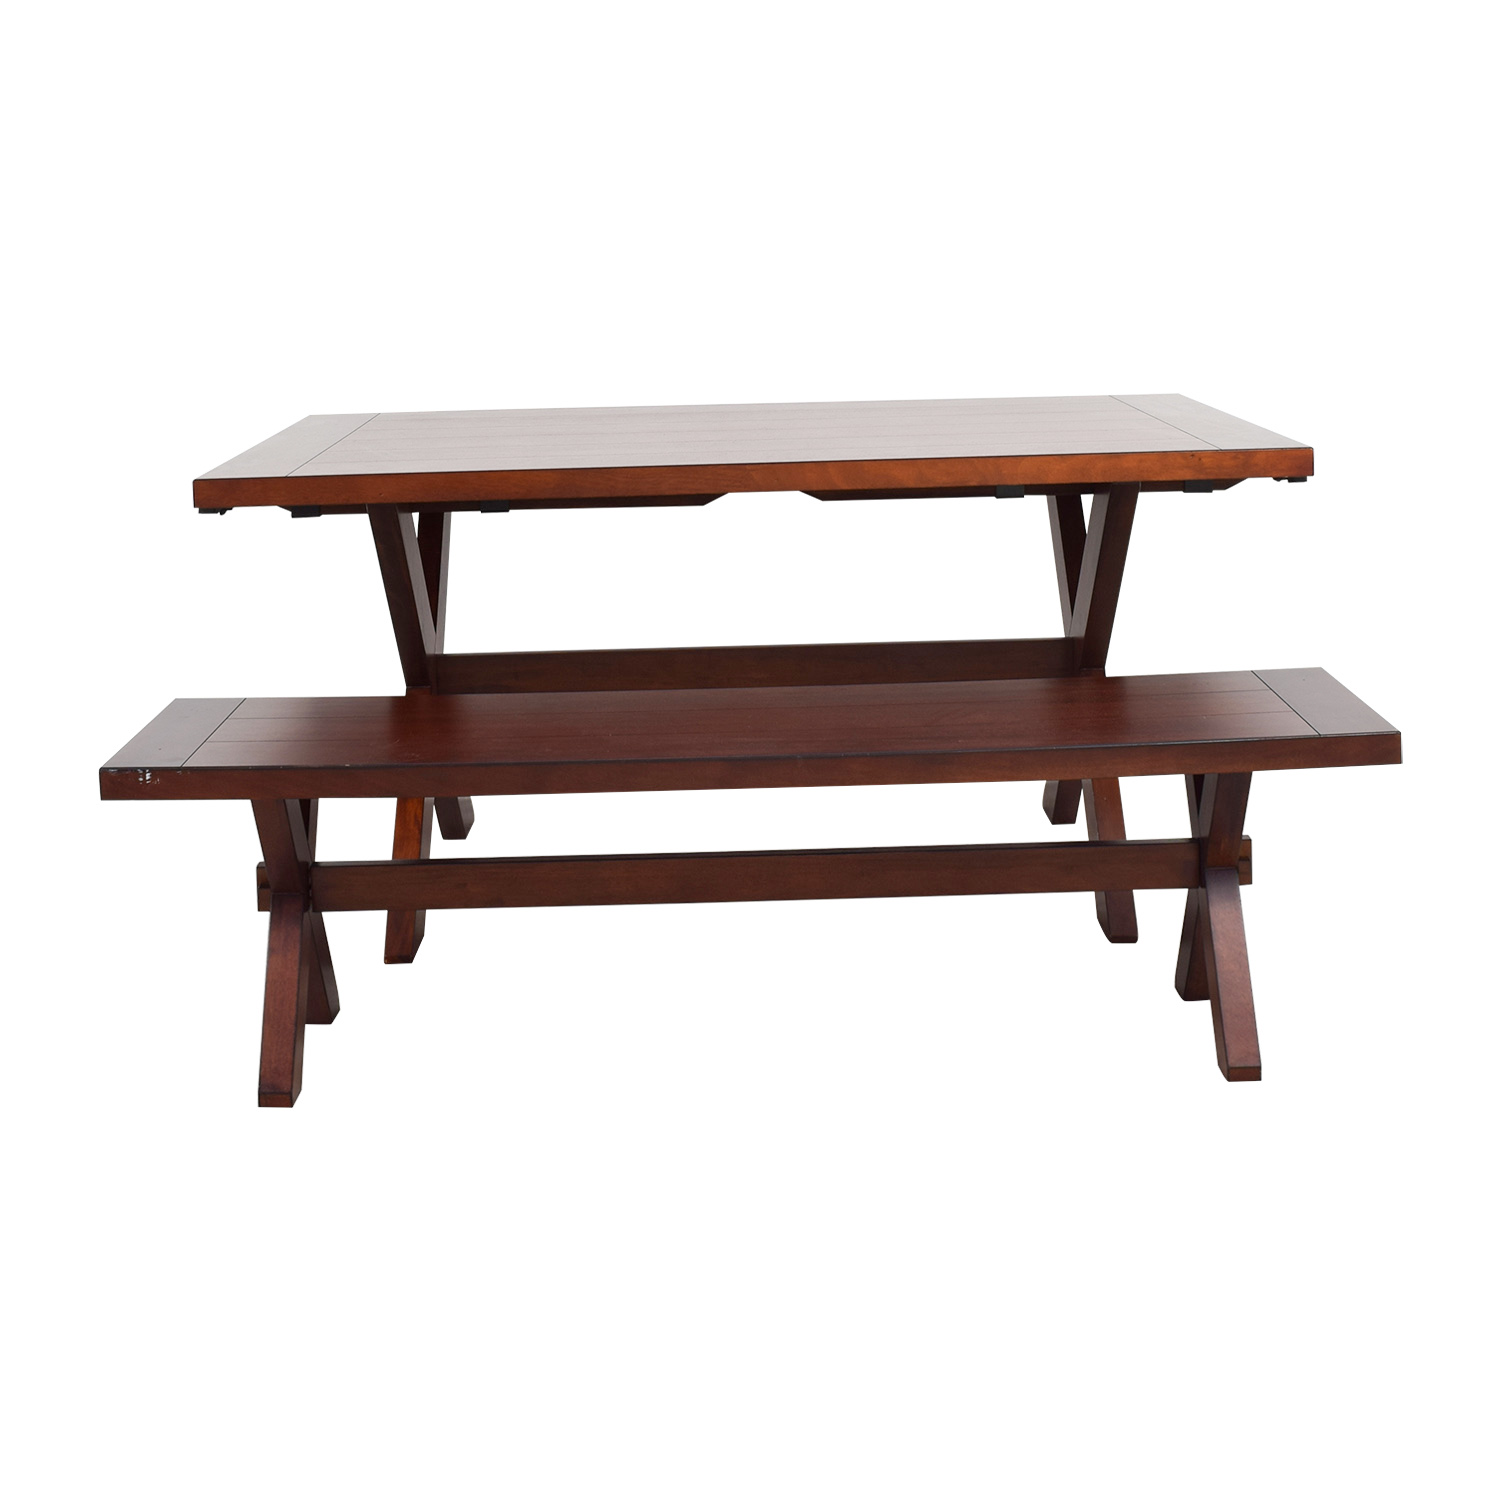 Pier 1 Imports Pier 1 Imports Nolan Wood Dining Table with Bench for sale